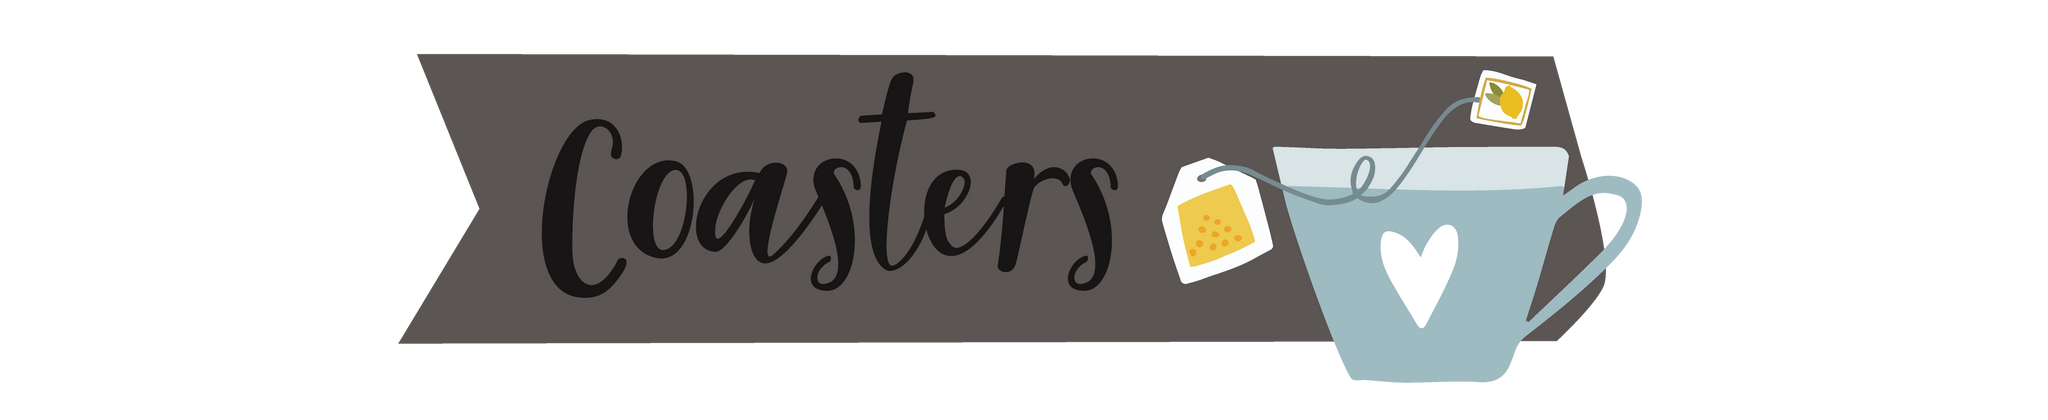 Coasters Collection Header